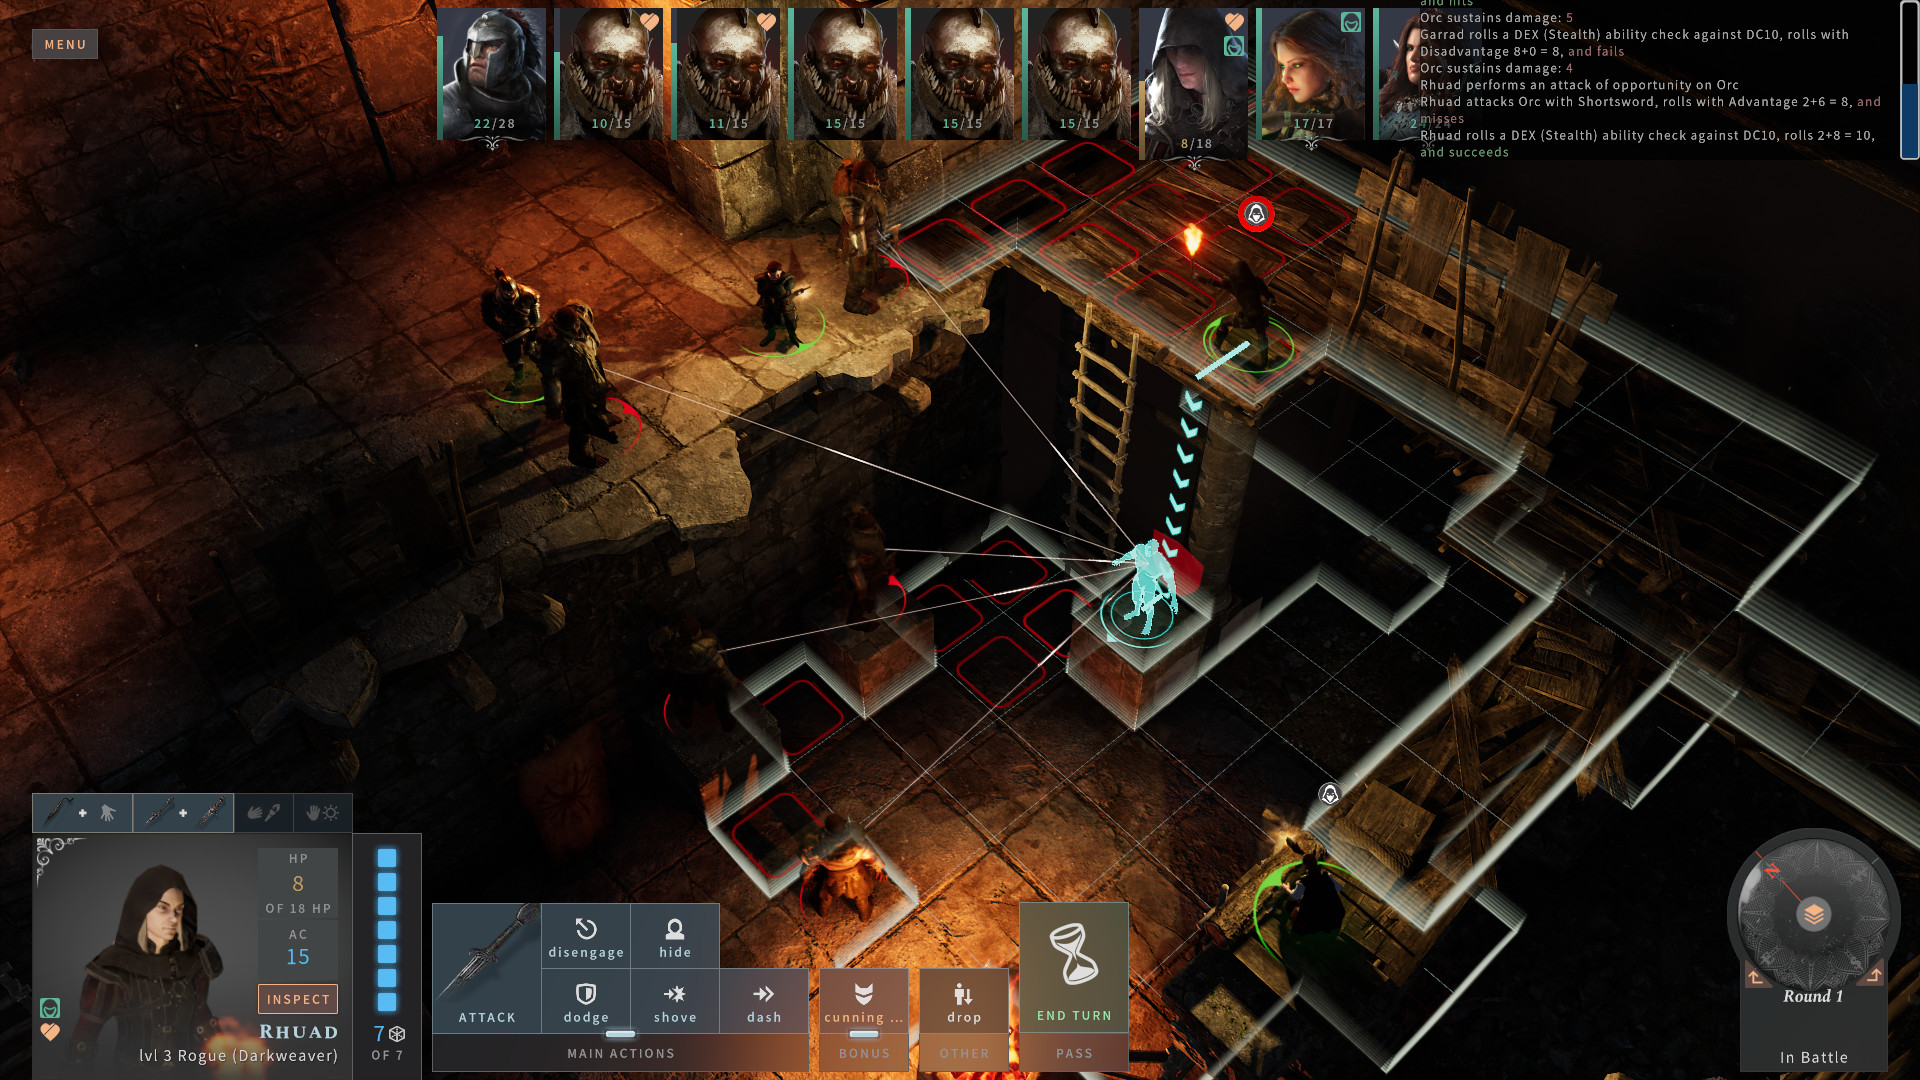 Solasta: Crown of the Magister Is Now Available Through Steam Early Access, Enter A New Fantasy Tactical RPG